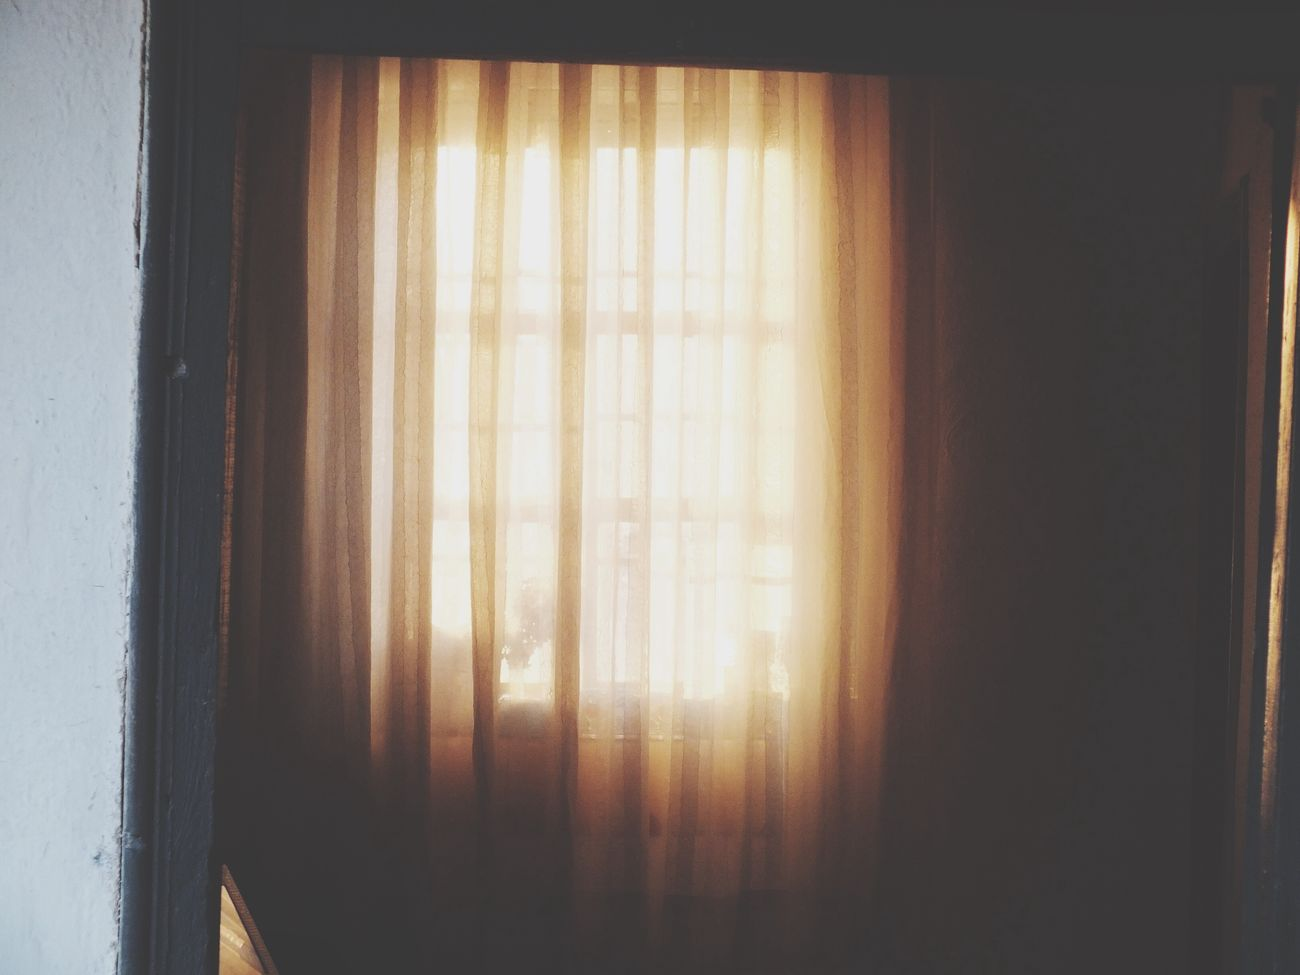 Windows Sunshine Light Pencere Aksamgunesi Eye4photography  Manzara Dediğin  EyeEm Best Shots Eyemphotography Village